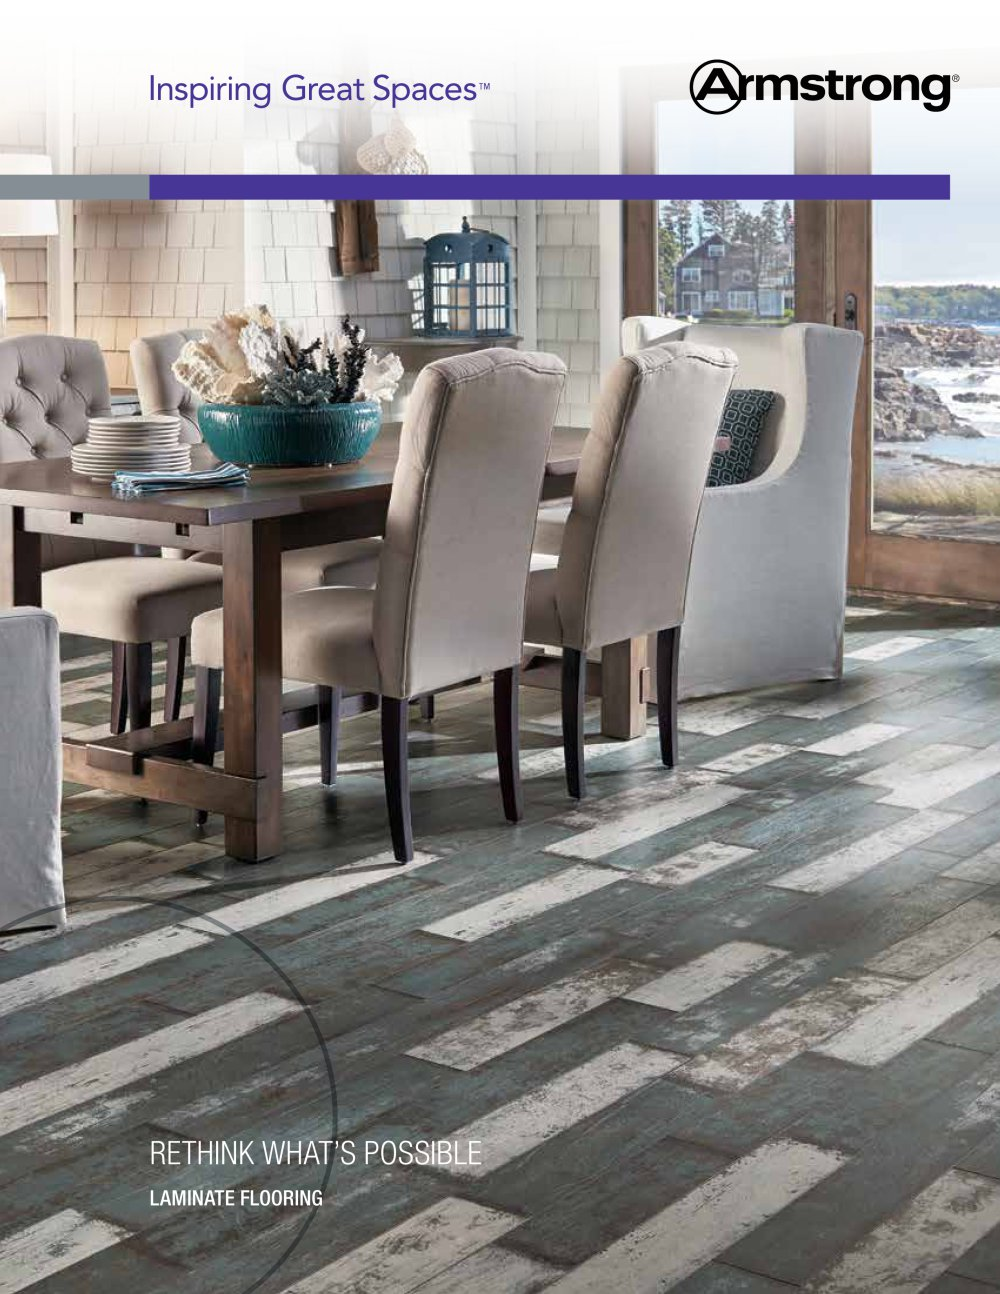 RETHINK WHAT'S POSSIBLE LAMINATE FLOORING - 1 / 94 Pages